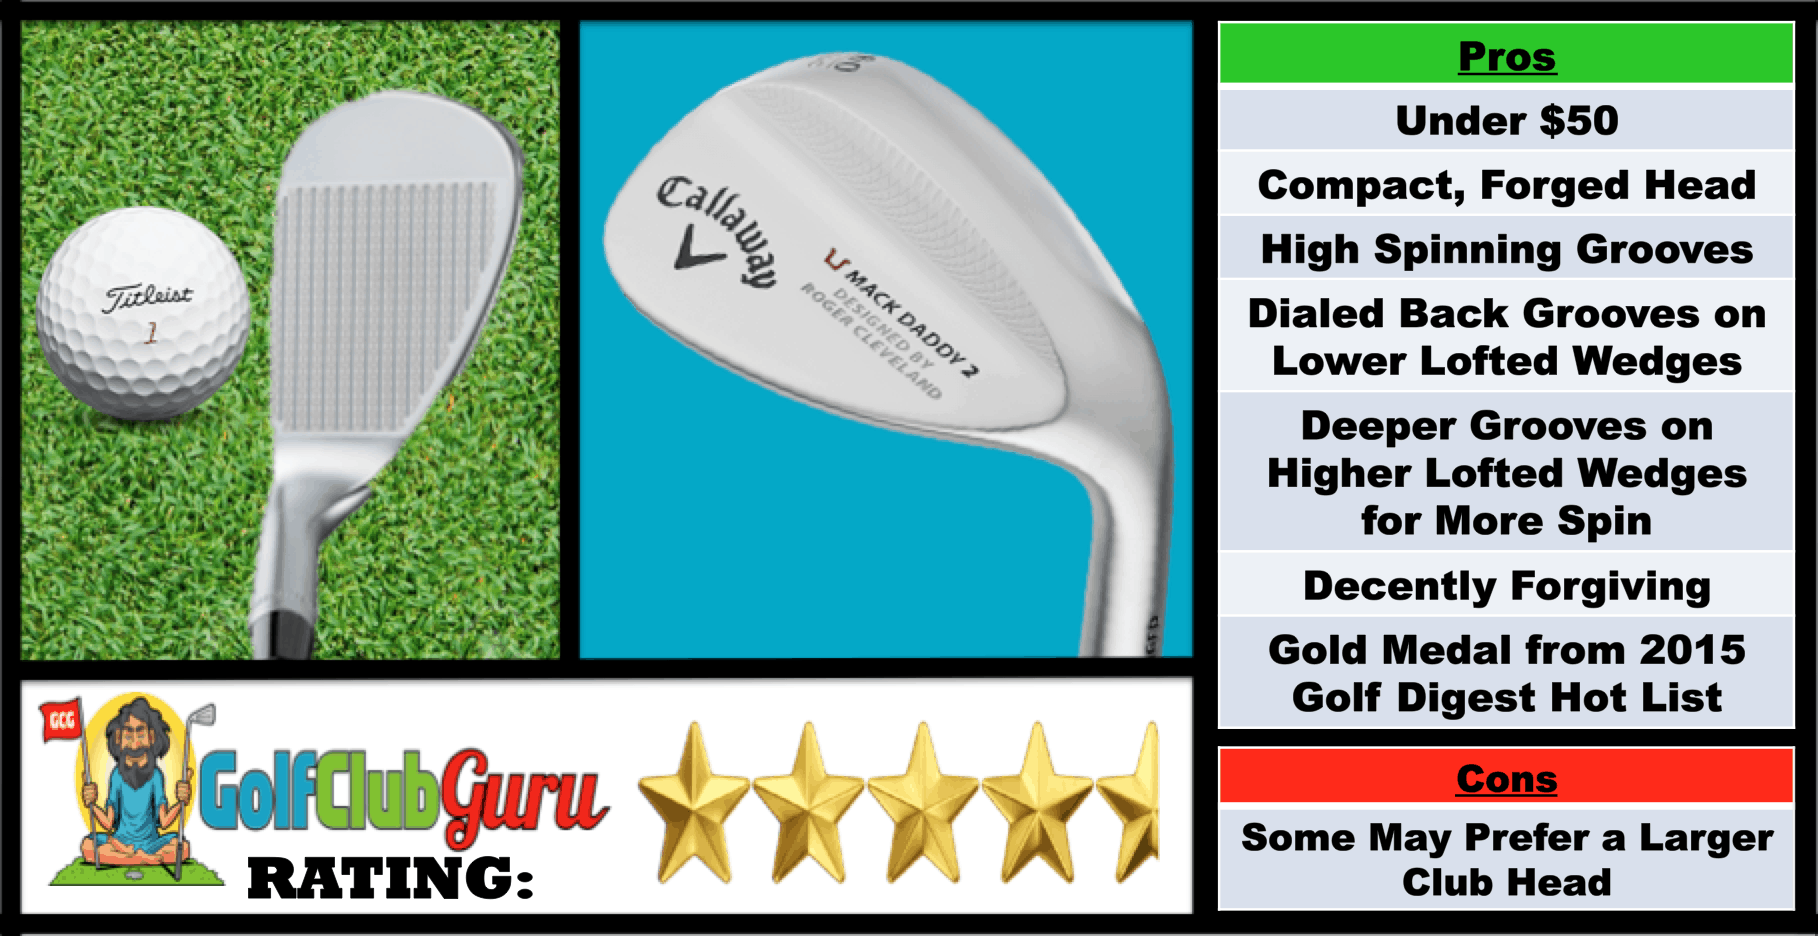 List of pros and cons of the Callaway Mack Daddy 2 golf wedge, with address and back views of the best value on a budget club.